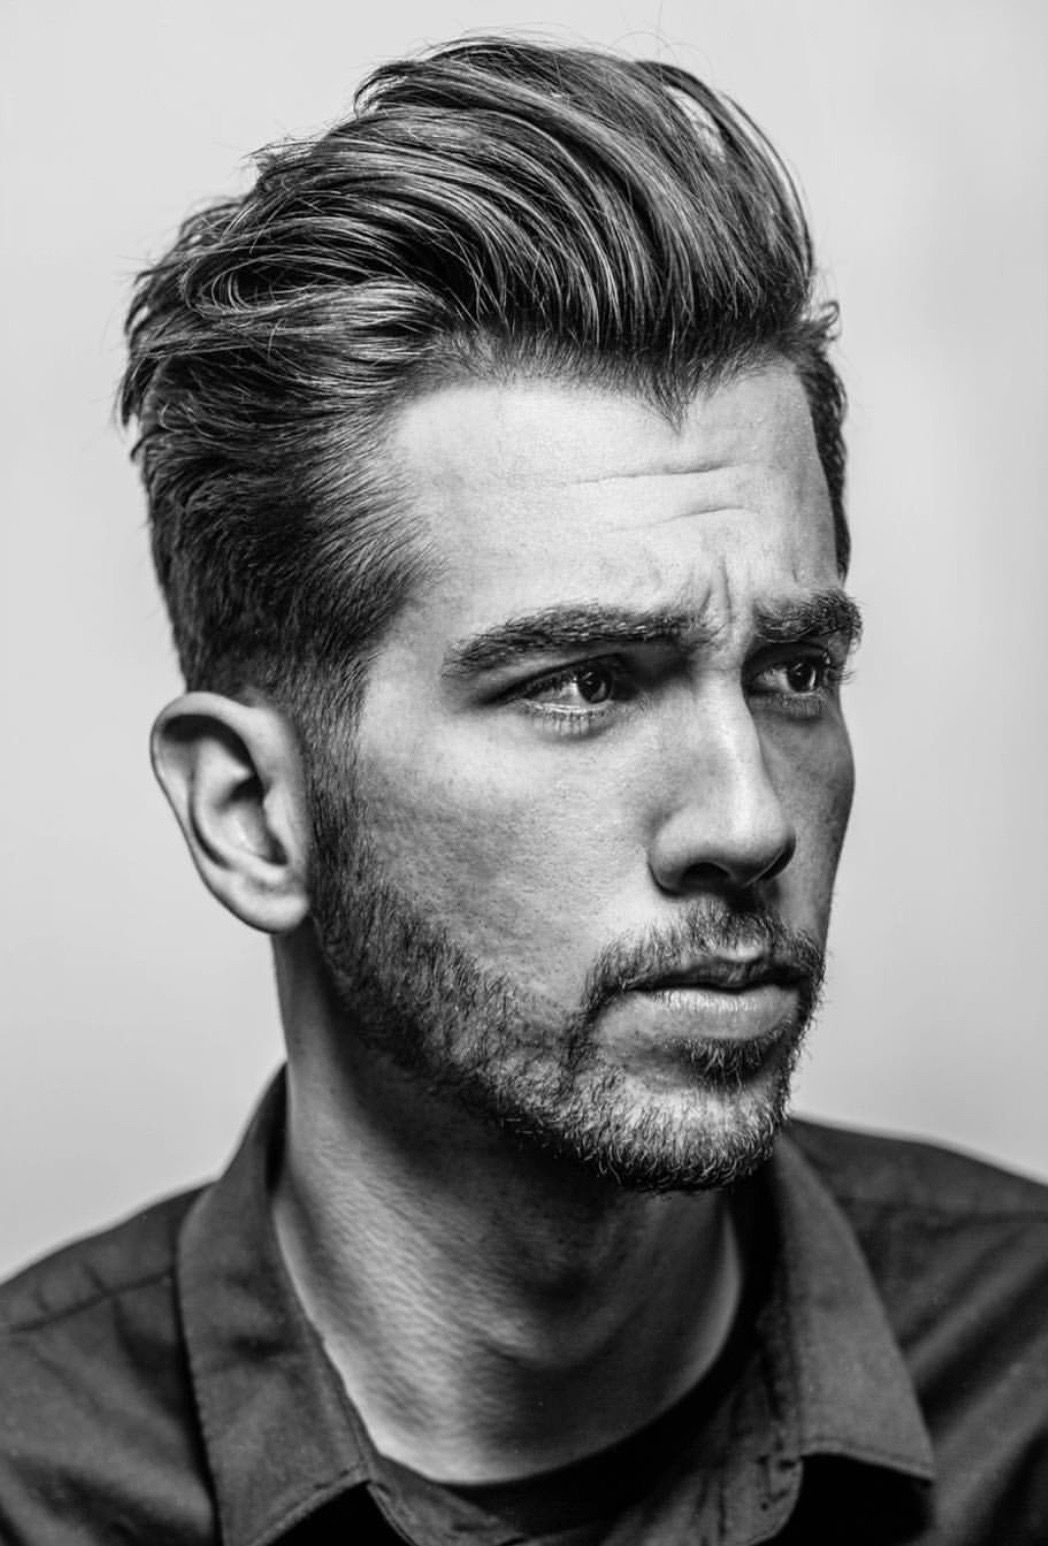 pin by sterling smith on hair in 2019 | medium hair cuts